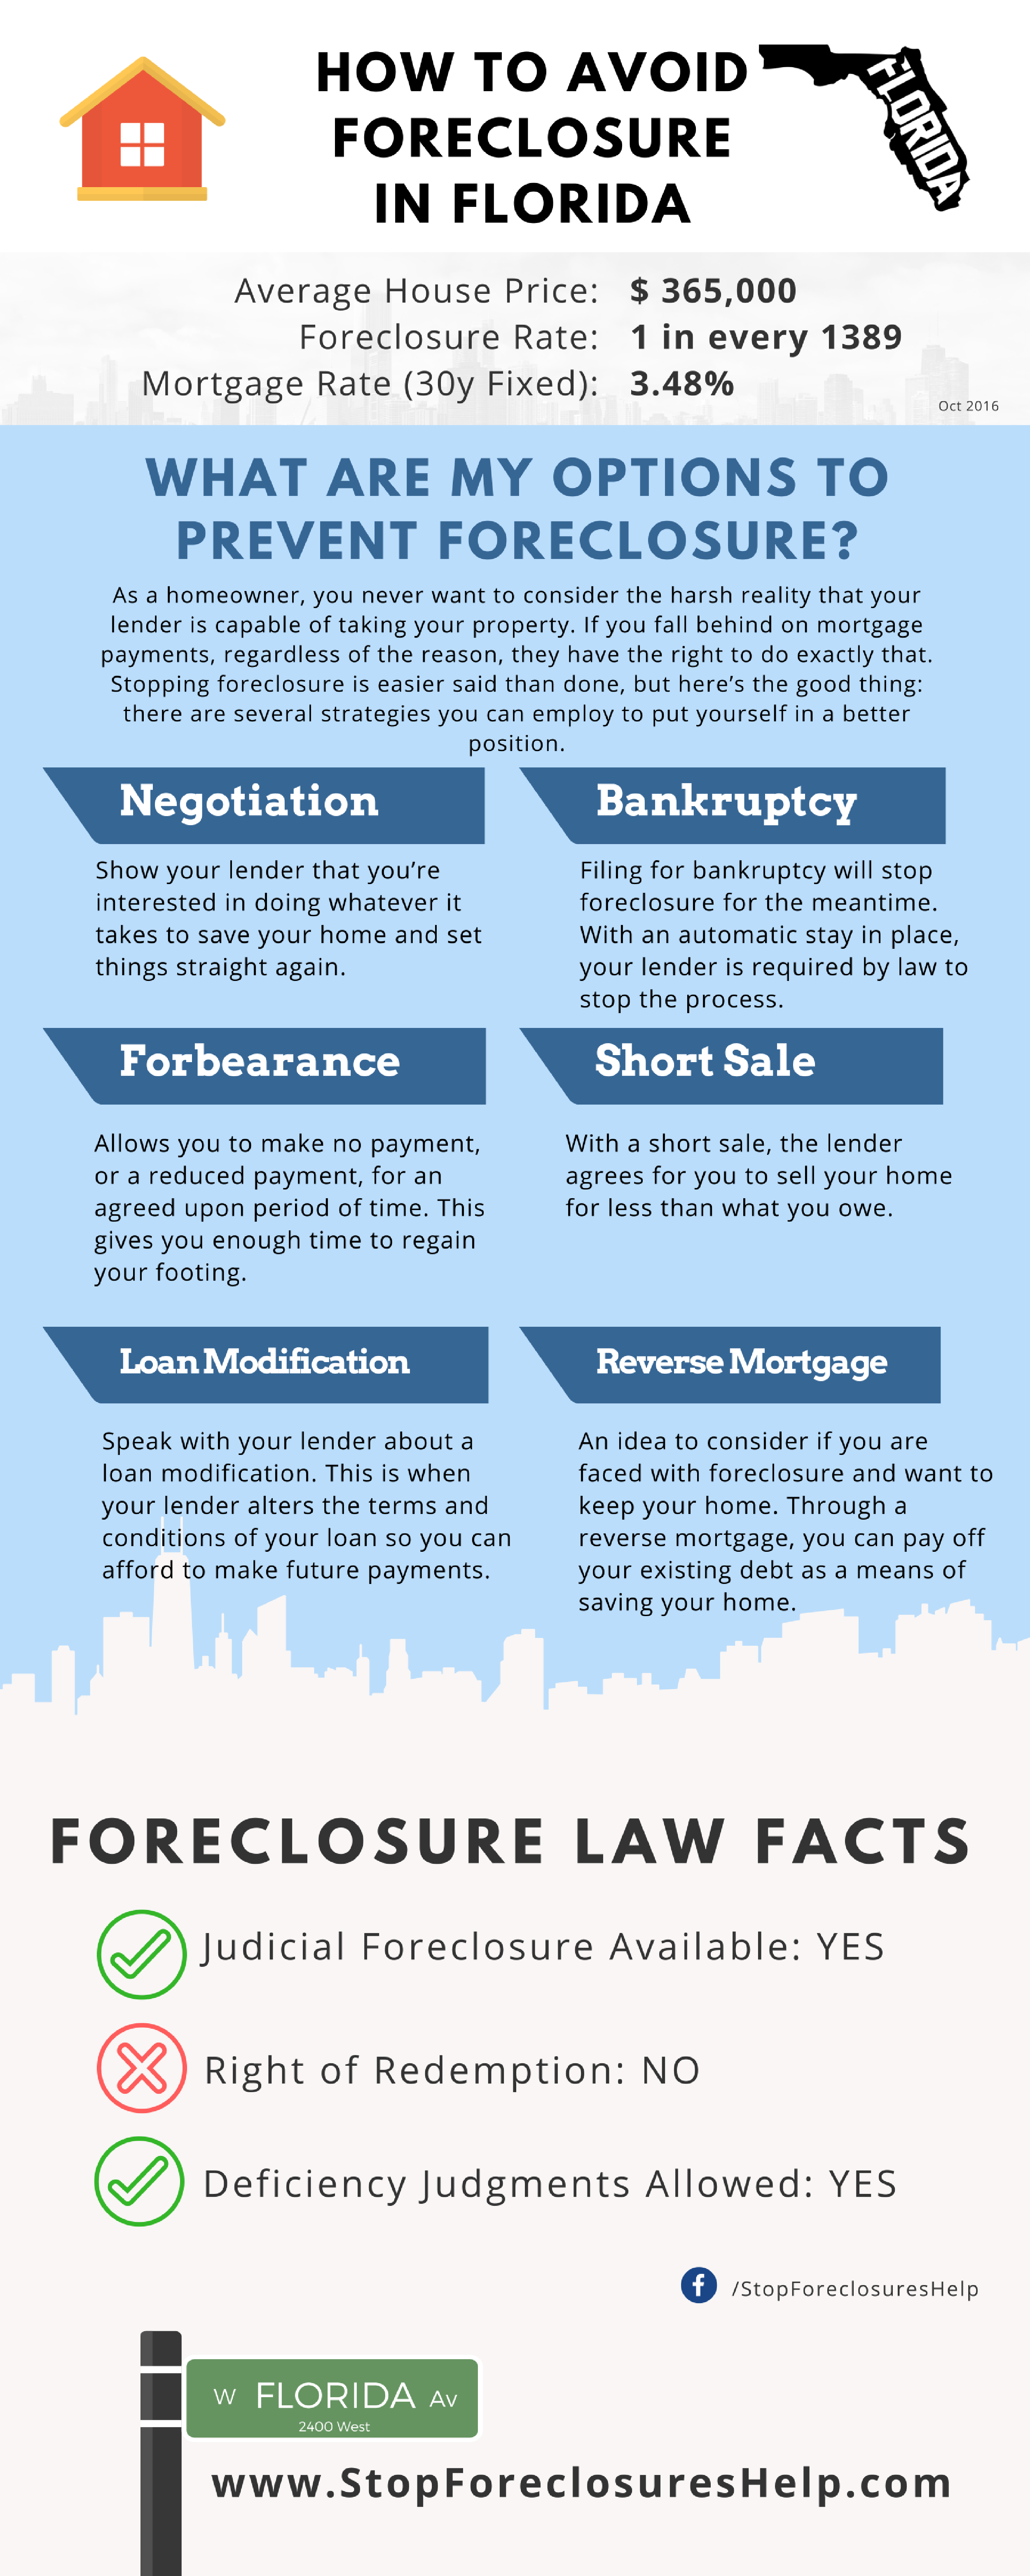 Infographic about how to Avoid Foreclosure in Florida